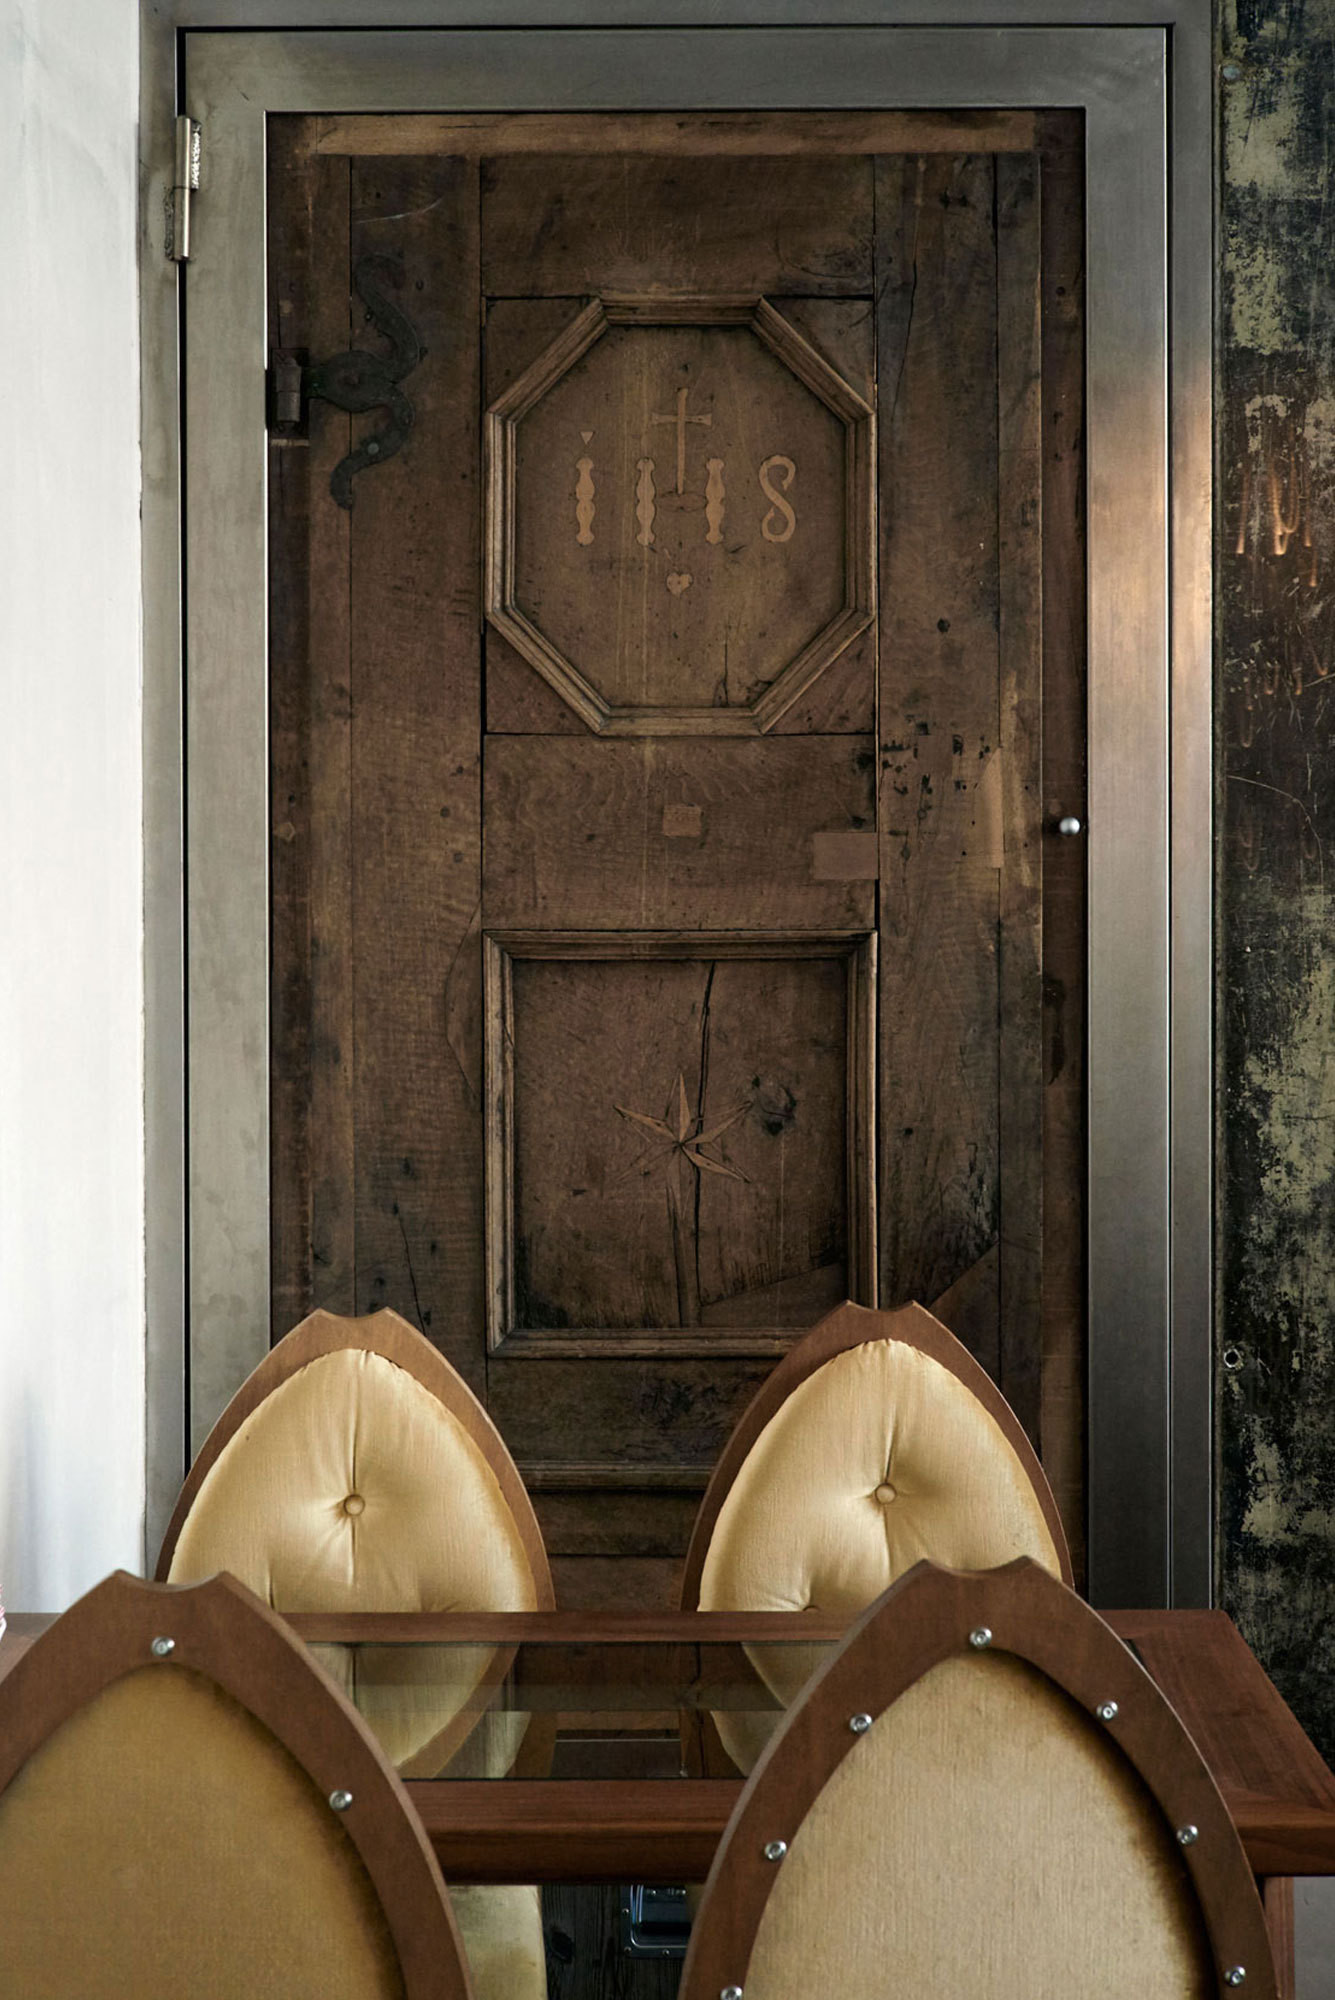 Rococo walnut chairs in the hotel restaurant offset a rustic door salvaged from a centuries-old chalet.